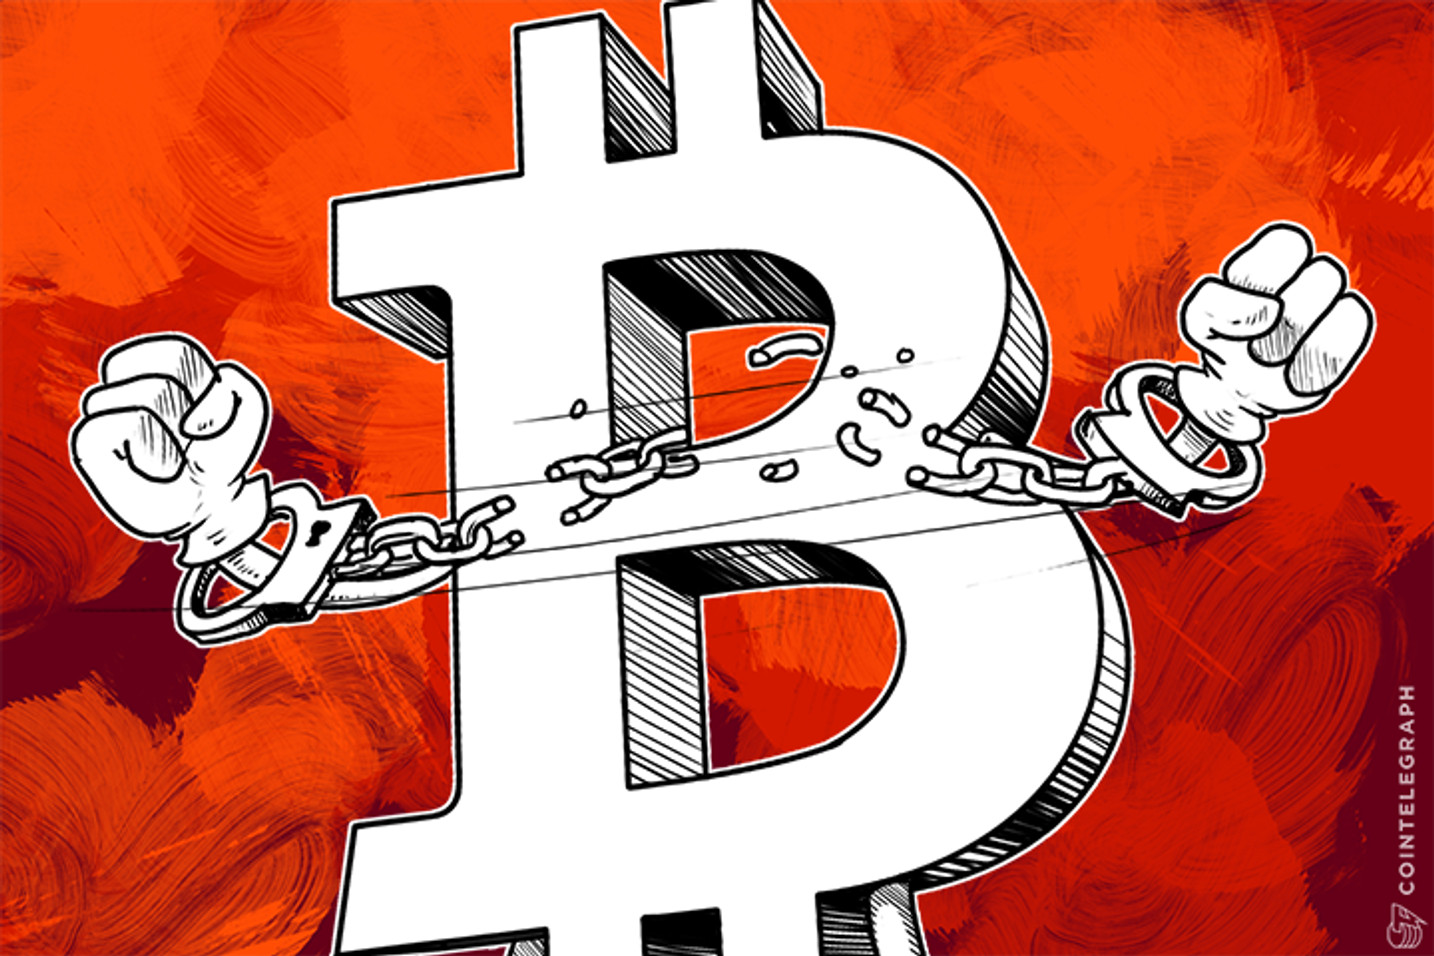 China (Unofficially) Authorizes Bitcoin, Price Turns Bullish [UPDATE]